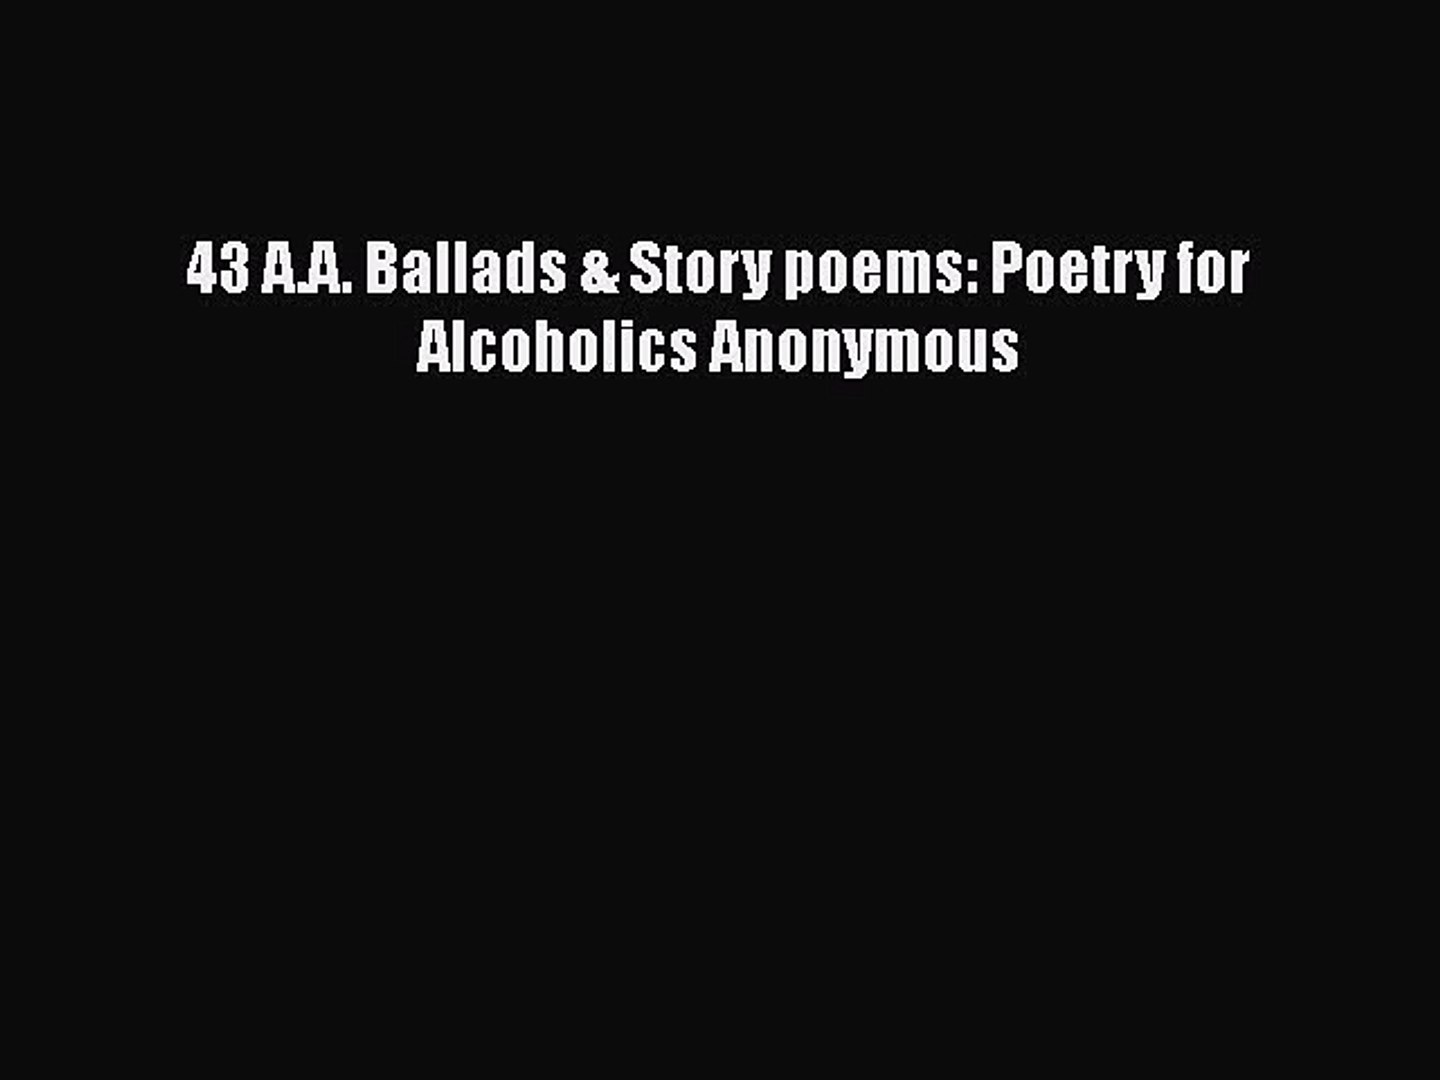 PDF 43 A.A. Ballads & Story poems: Poetry for Alcoholics Anonymous Free Books